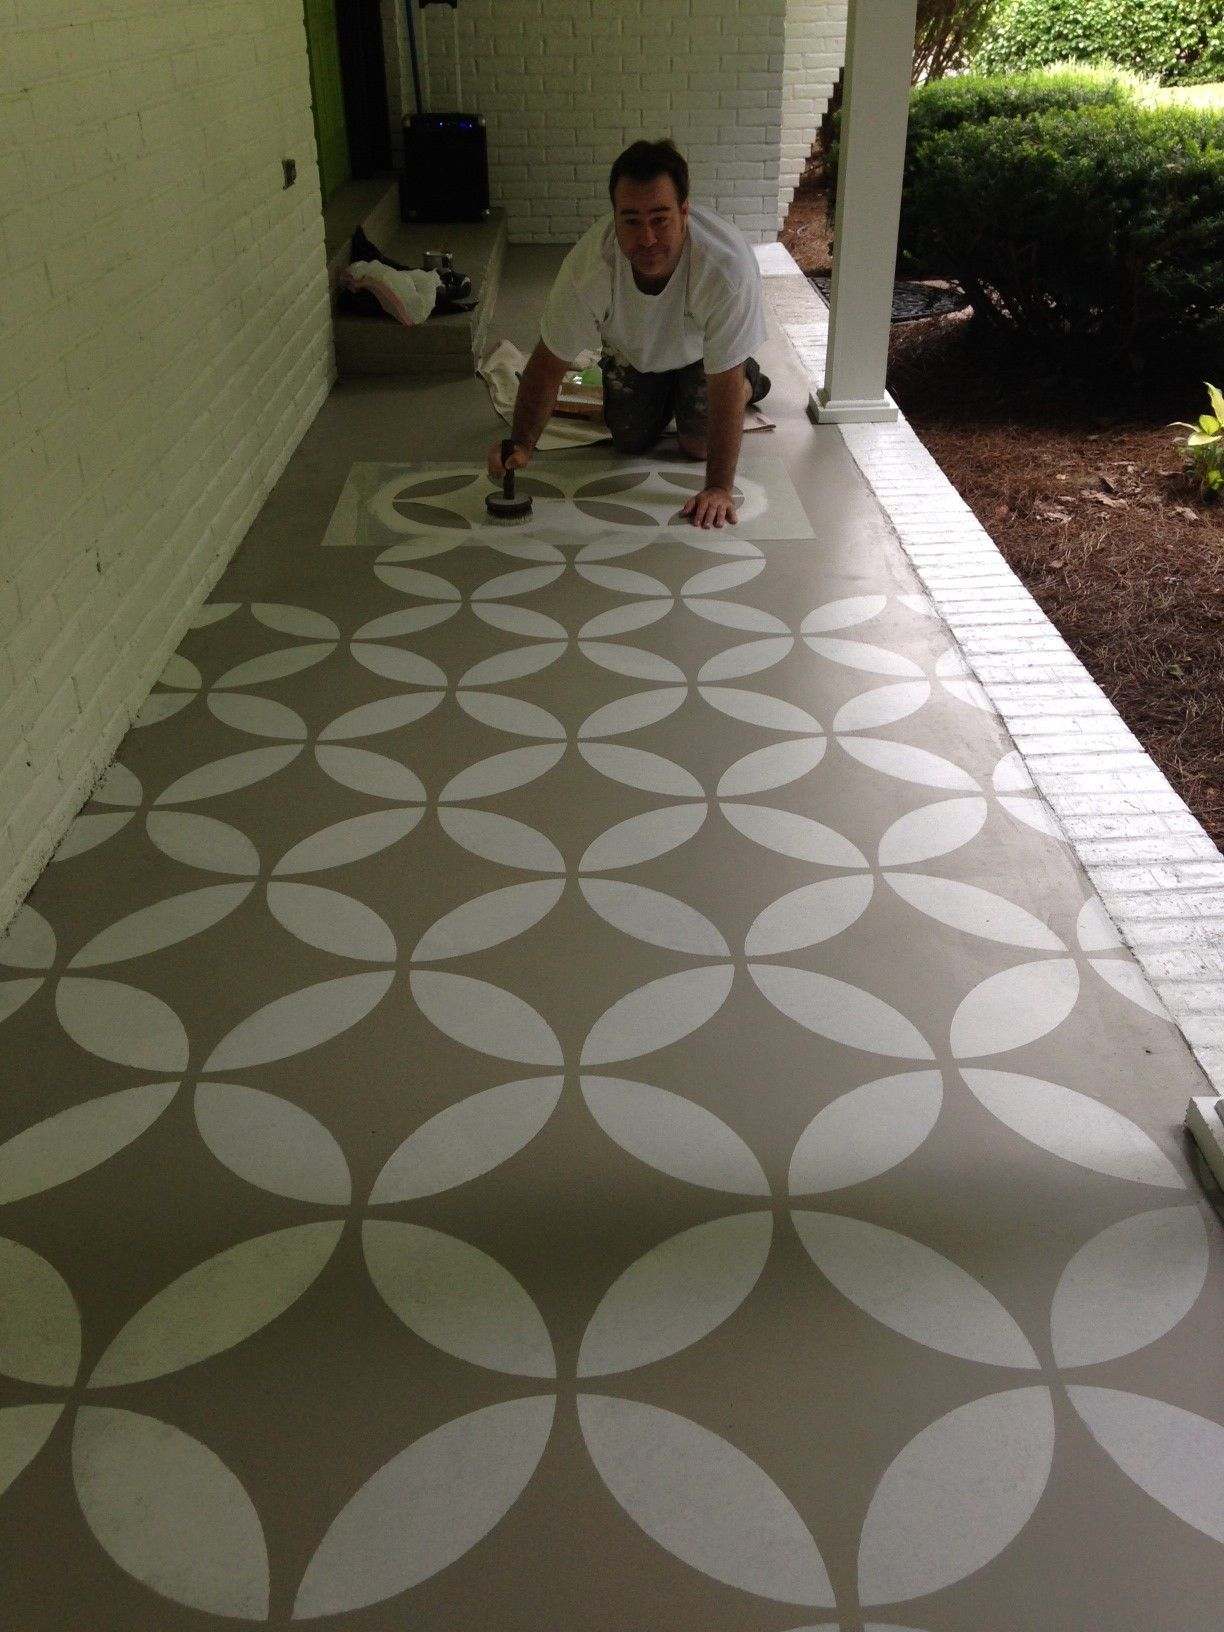 concrete patio floor paint ideas yard pinterest floor back porch floor painted door and front porch makeover by bella tucker decorative finishes with royal design studio stencils on concrete floor